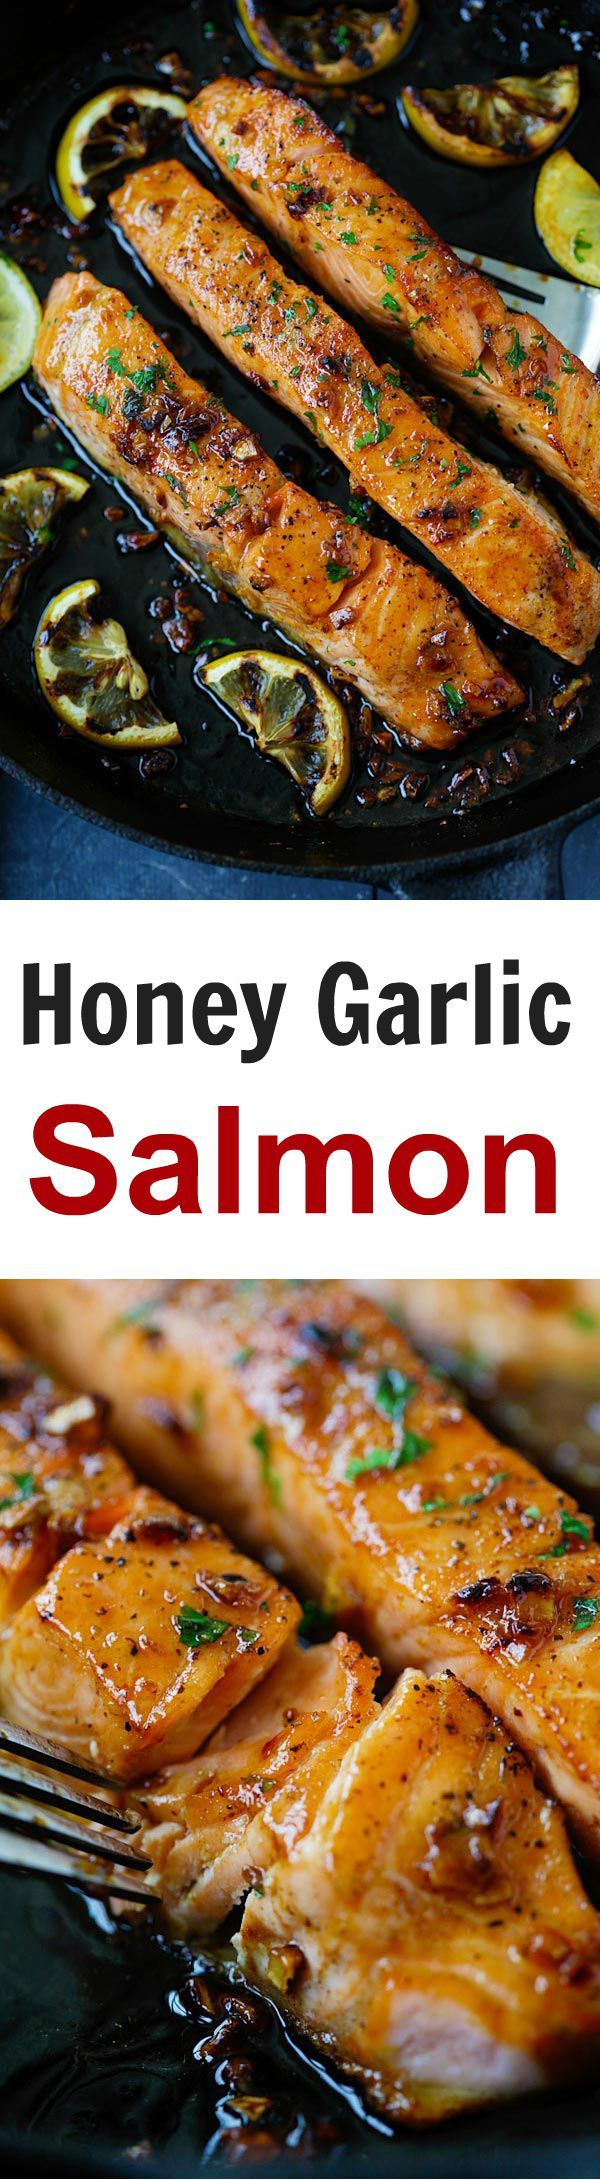 Honey Garlic Salmon – garlicky, sweet and sticky salmon with simple ingredients. Takes 20 mins, so good and great for tonight's dinner   rasamalaysia.com